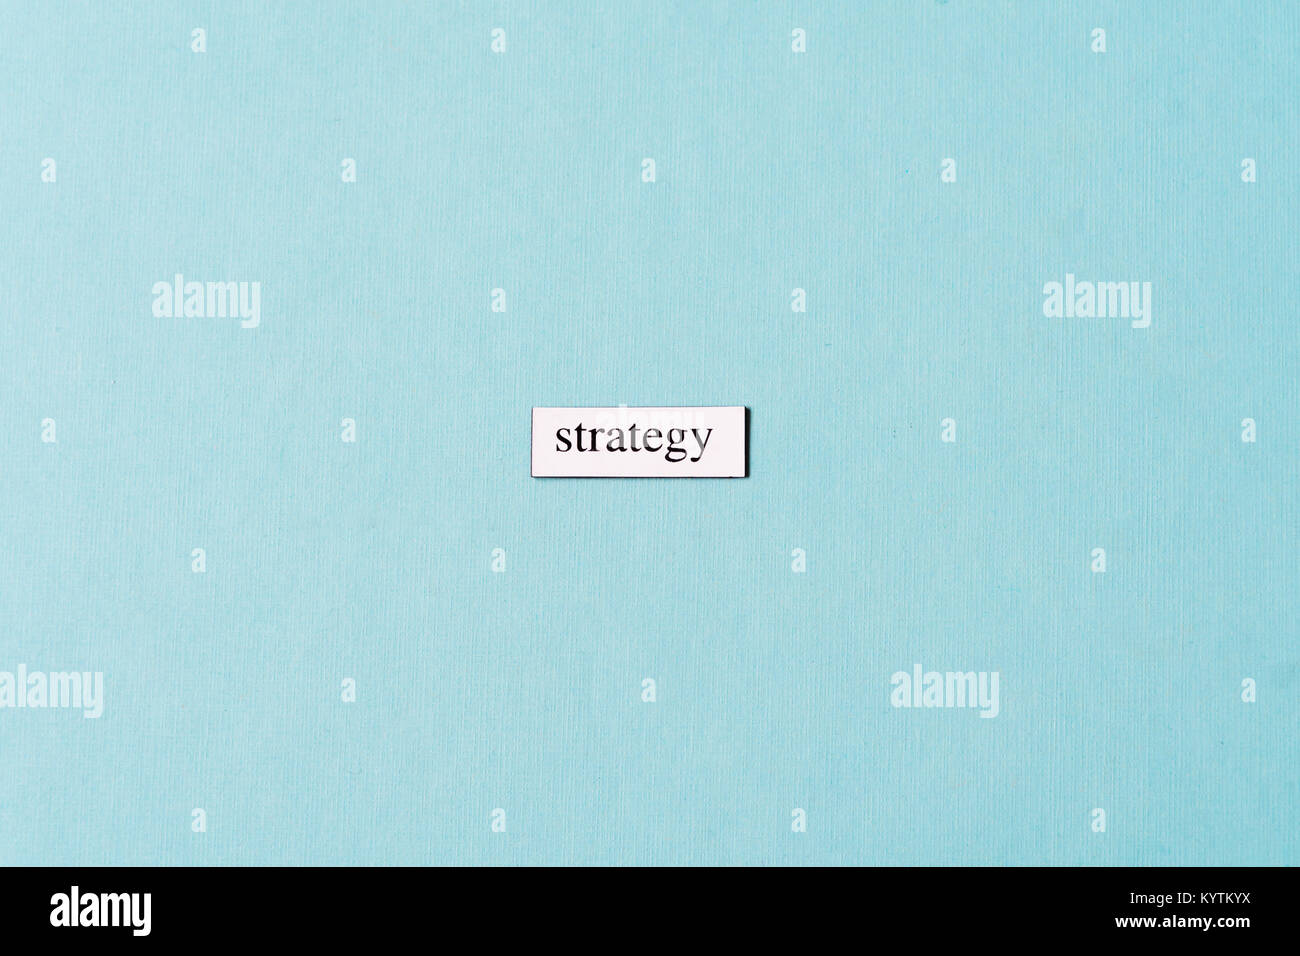 Strategy concept flat lay with copy space - Stock Image